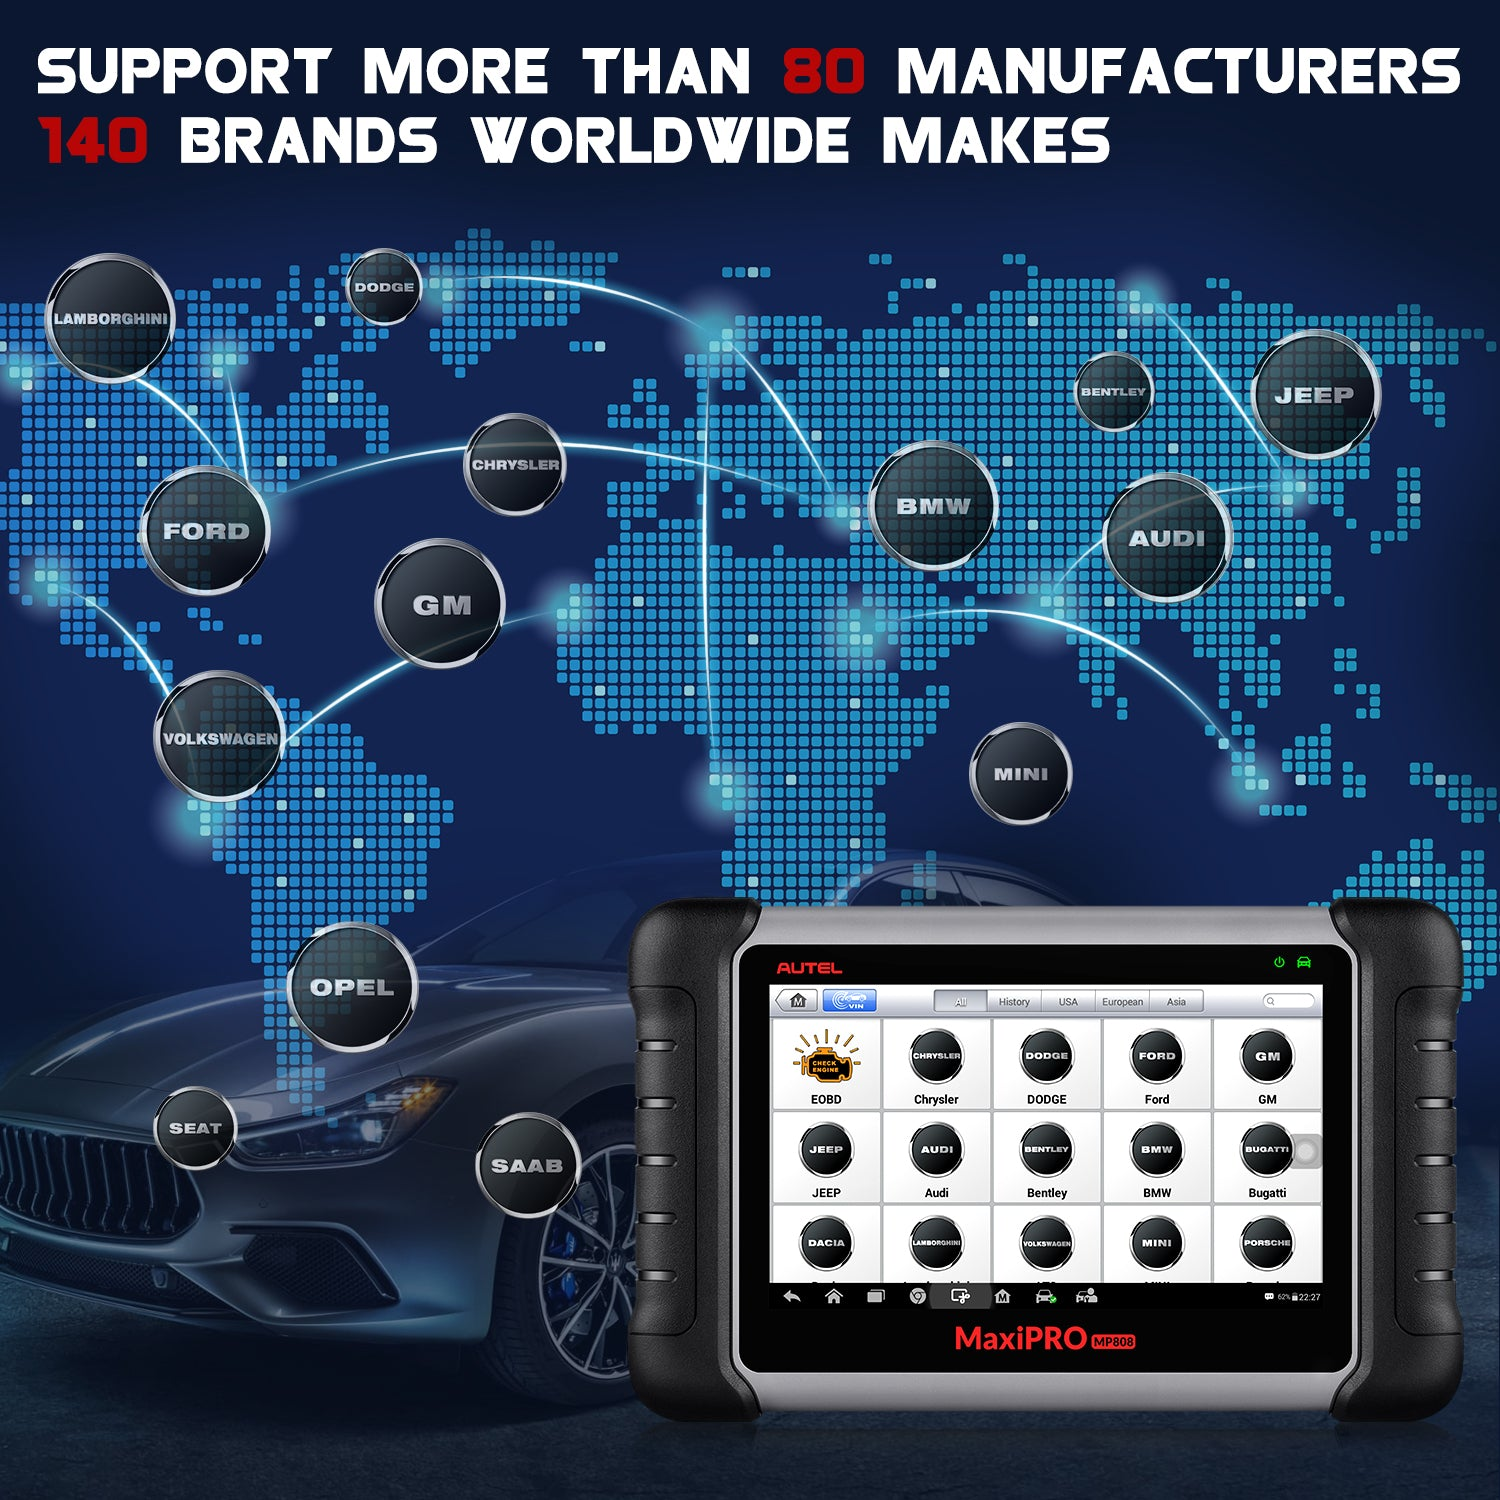 Autel MaxiPro MP808K OE-level All System OBD2 Diagnostics Tool Supports More Than 80 Manufactures 140 Brands